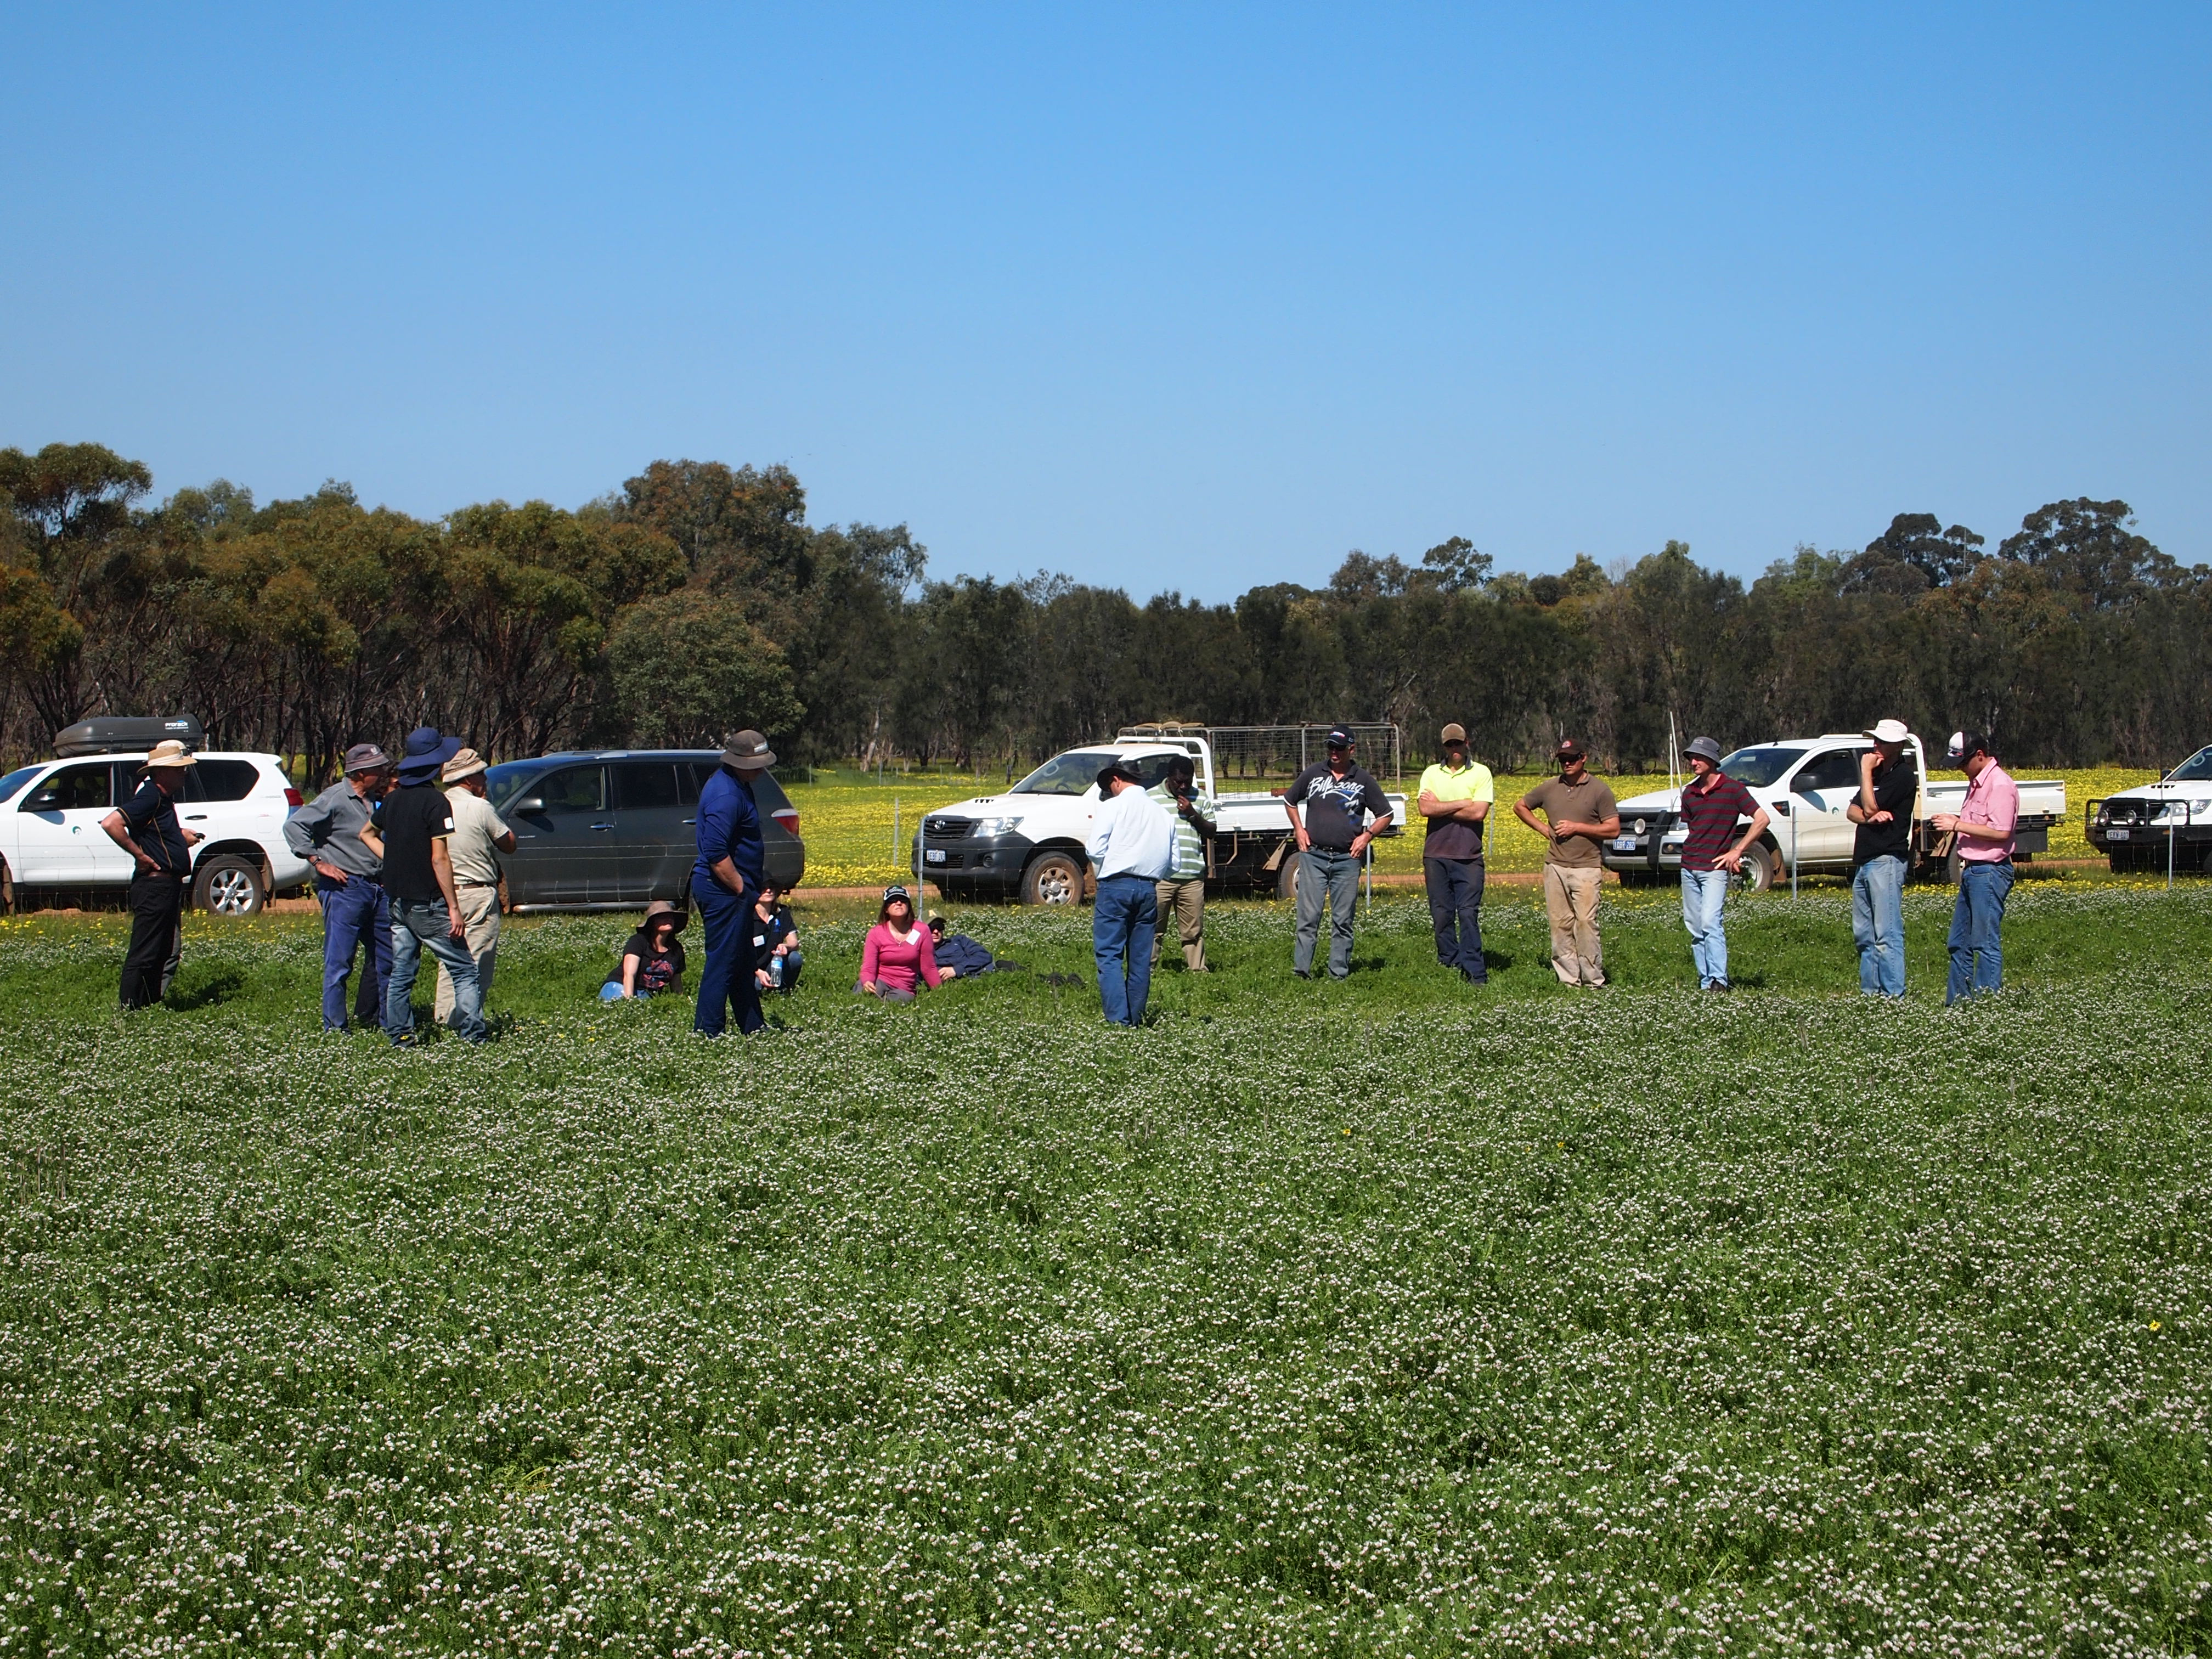 Image of growers standing in a field